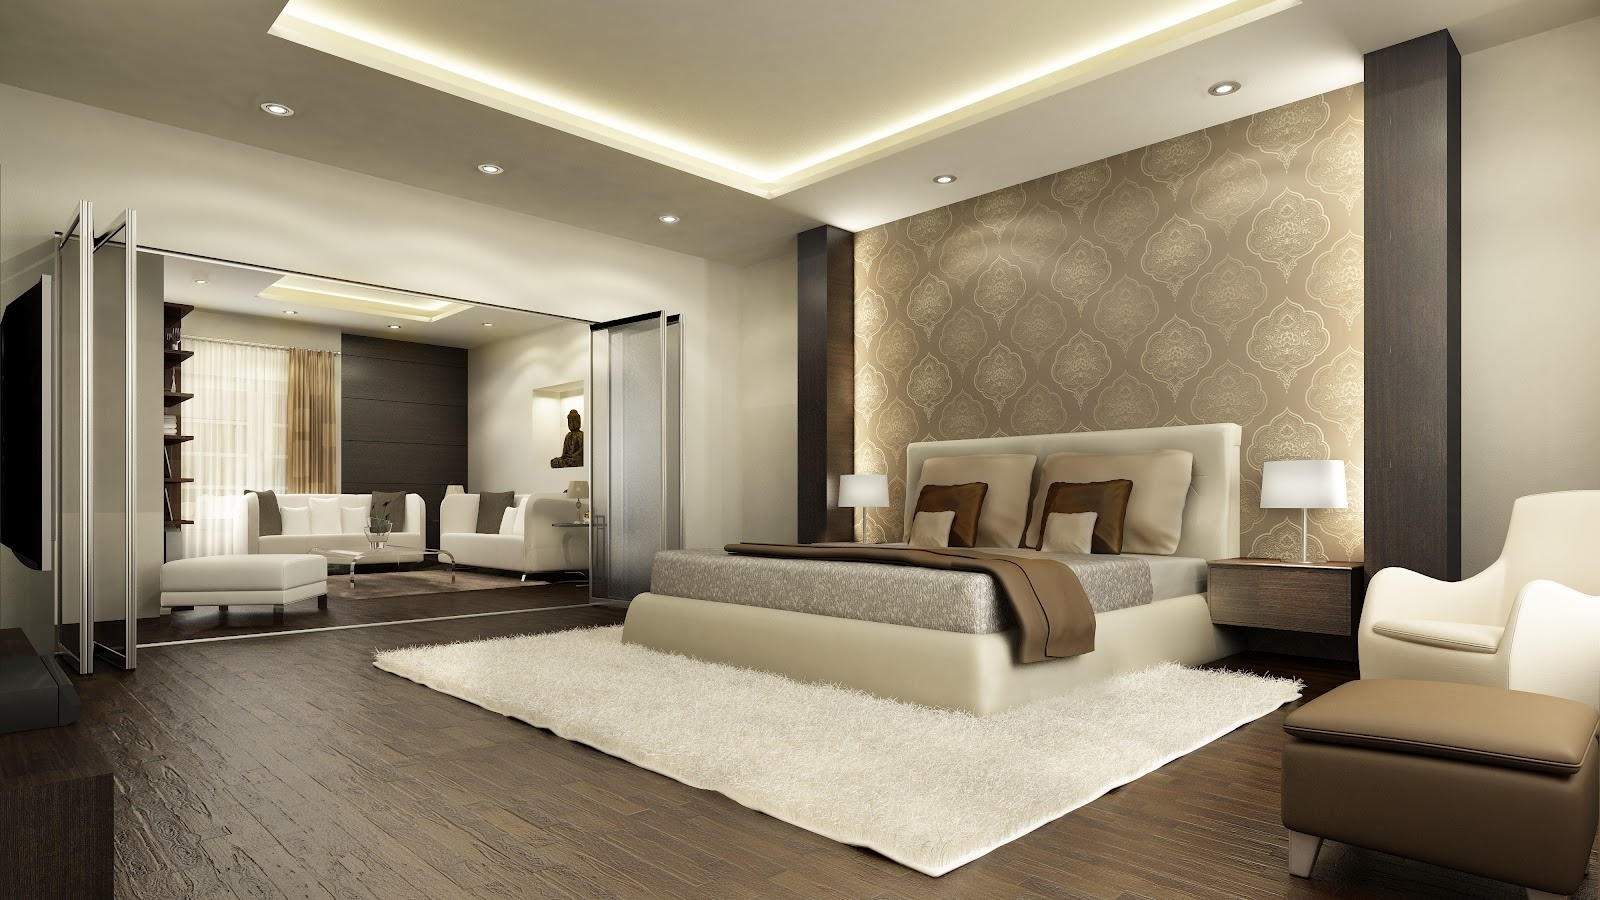 Inspiring Master Bedroom Decorating Ideas